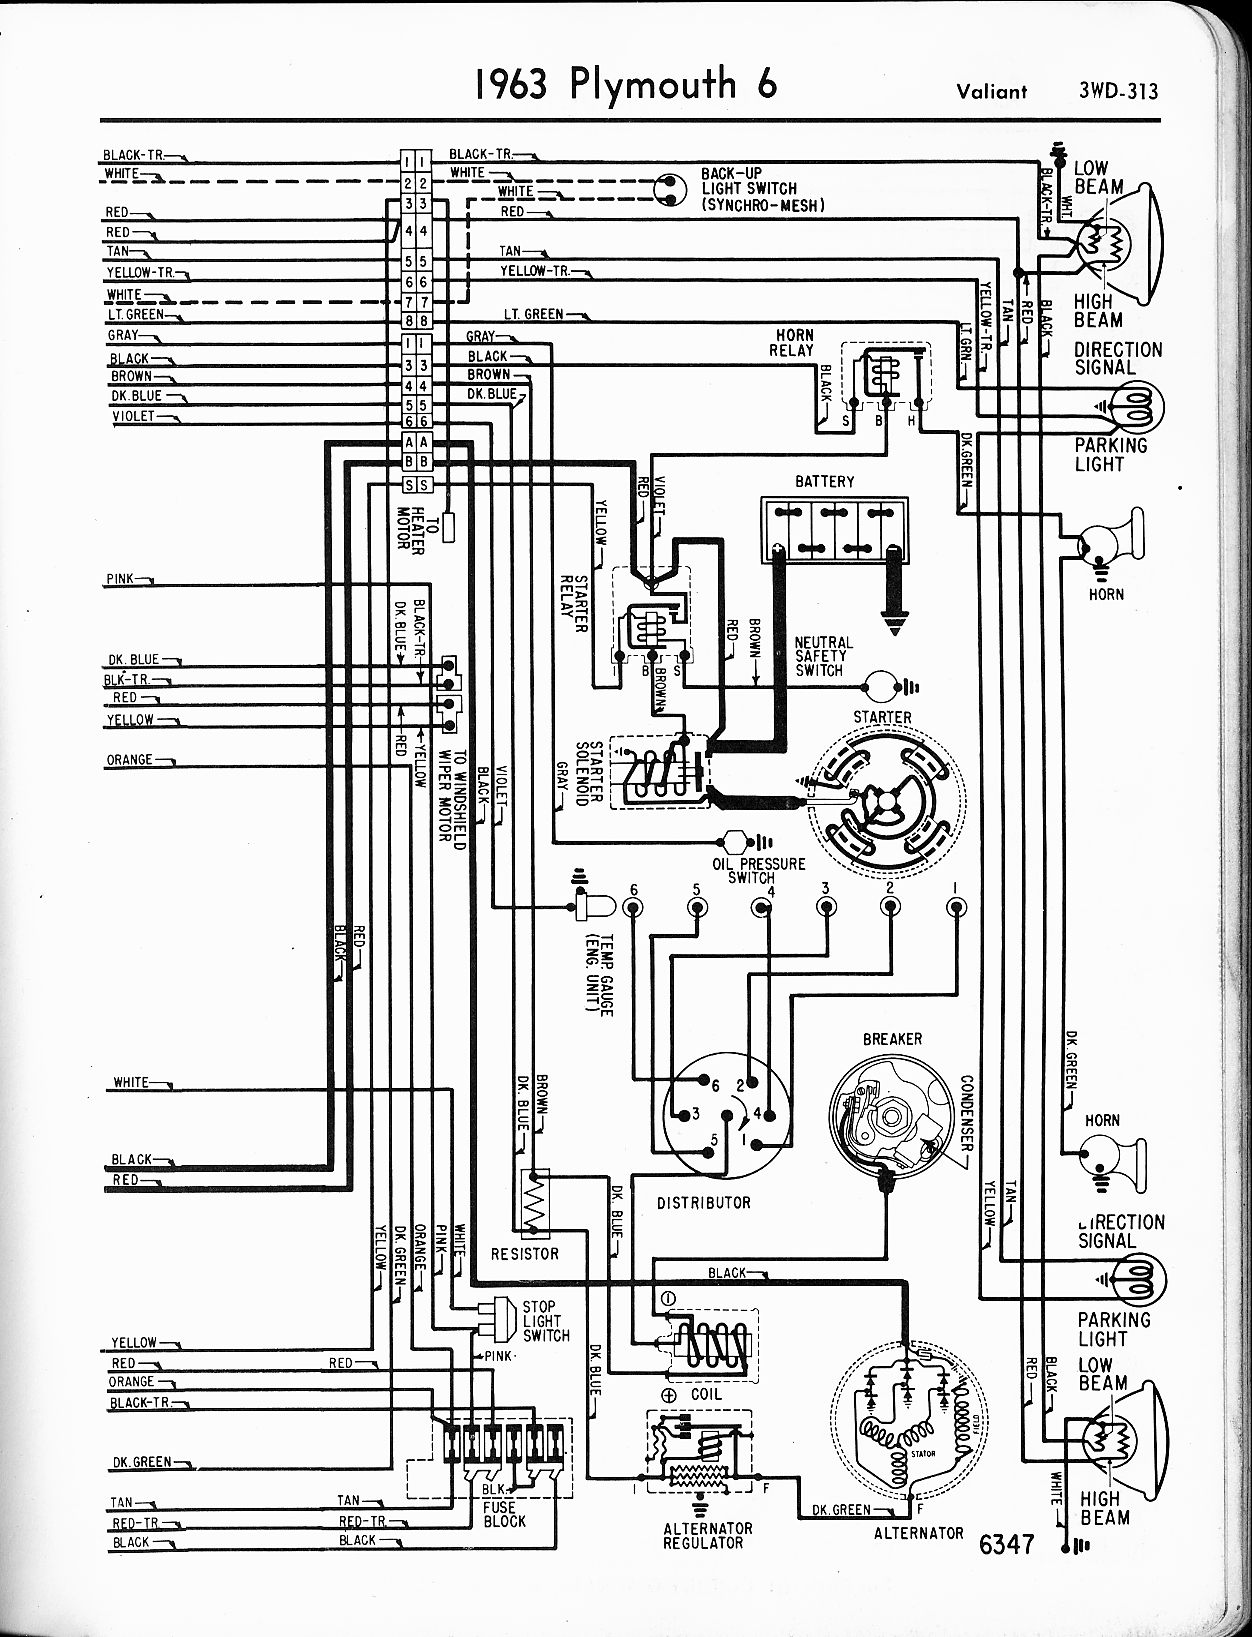 Wiring Diagram For 65 Plymouth 6 - Data Wiring Diagrams •